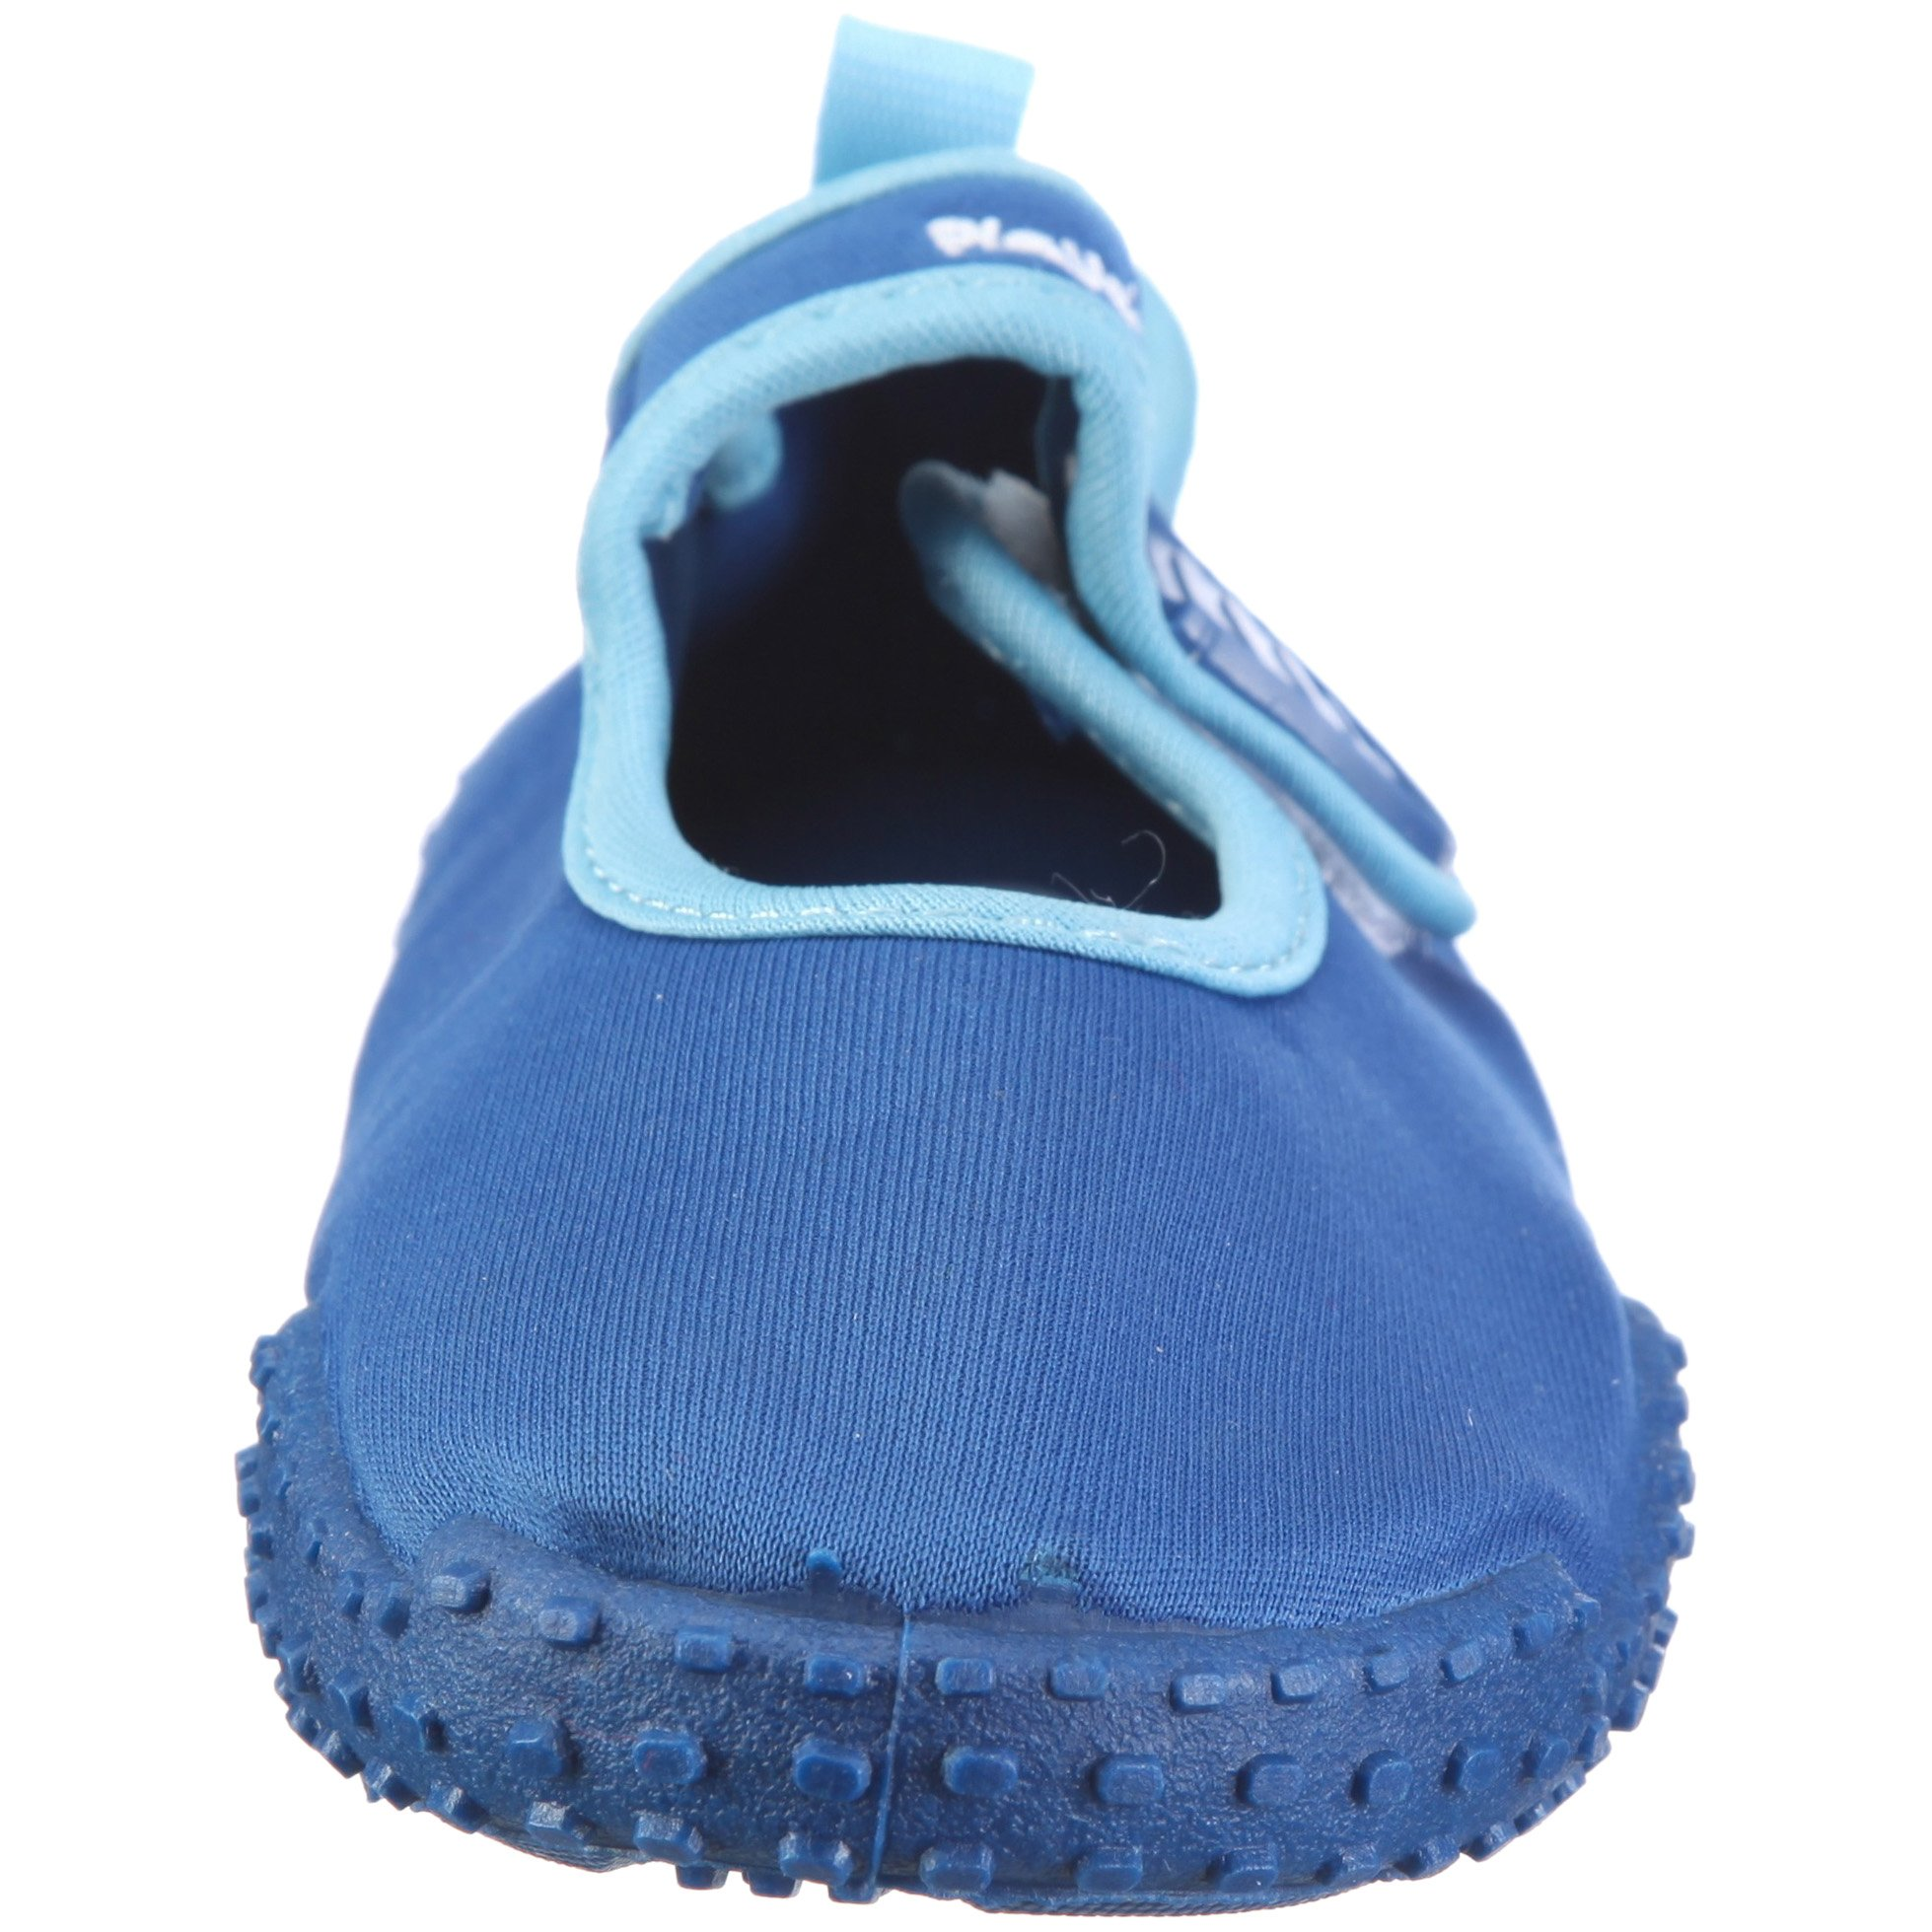 Playshoes Children's Aqua Beach Water Shoes (11.5 M US Little Kid, Blue) by Playshoes (Image #4)